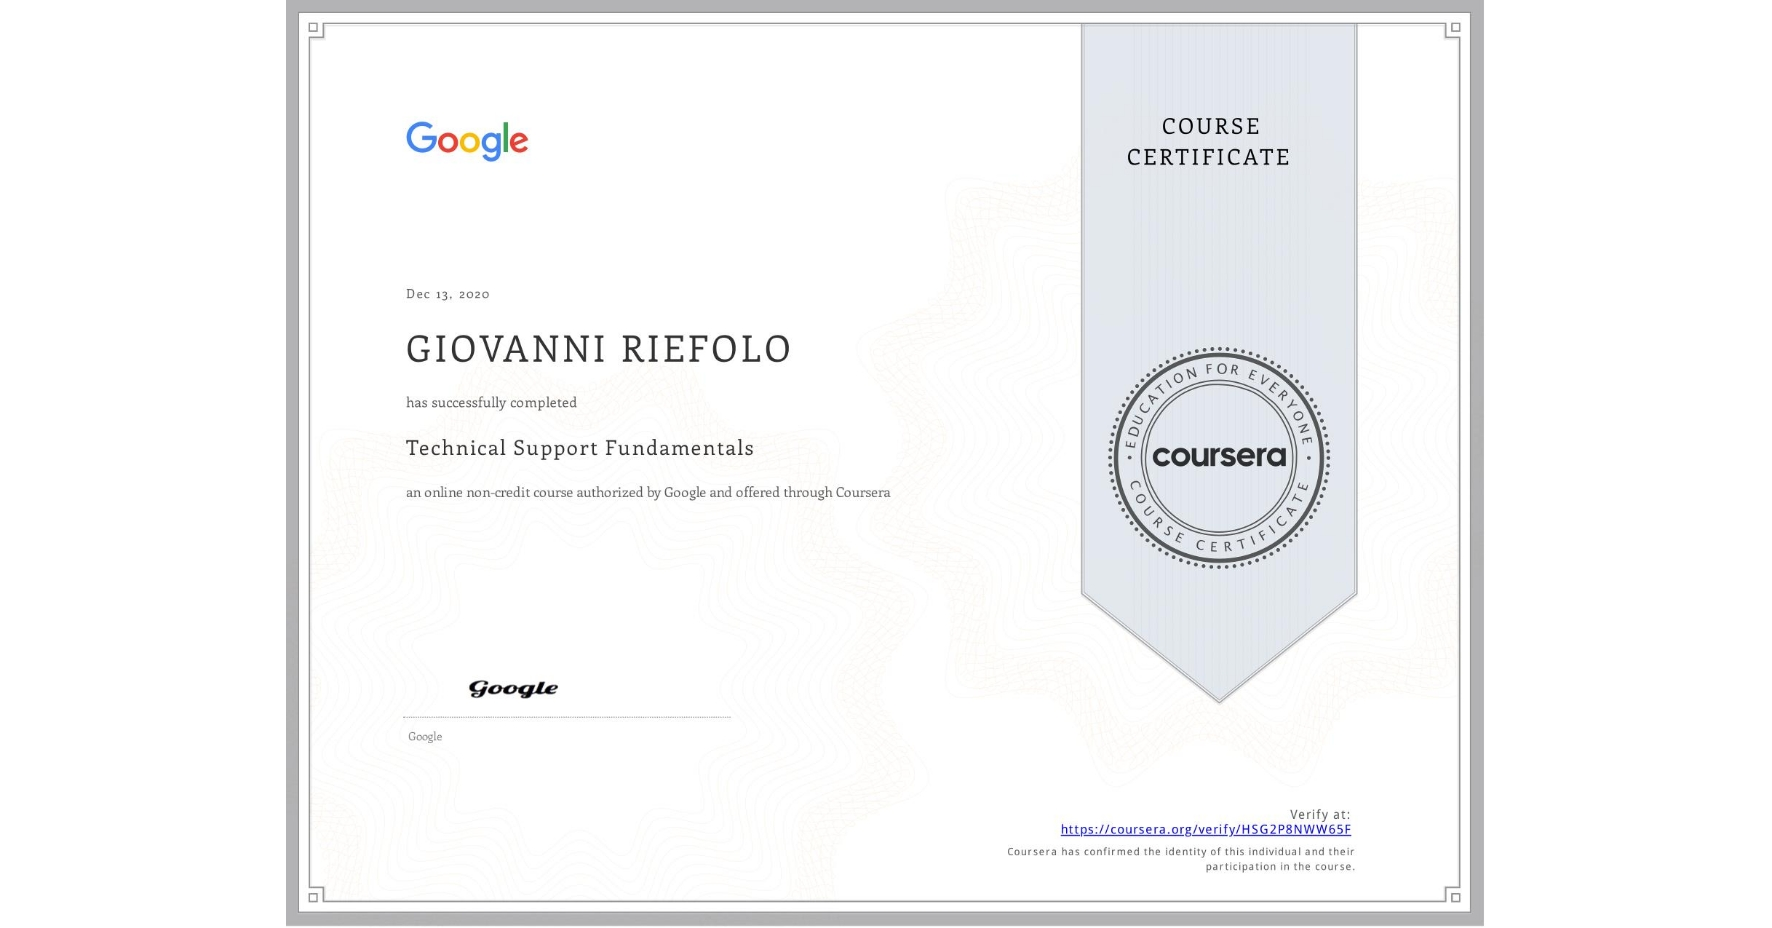 View certificate for GIOVANNI RIEFOLO, Technical Support Fundamentals, an online non-credit course authorized by Google and offered through Coursera